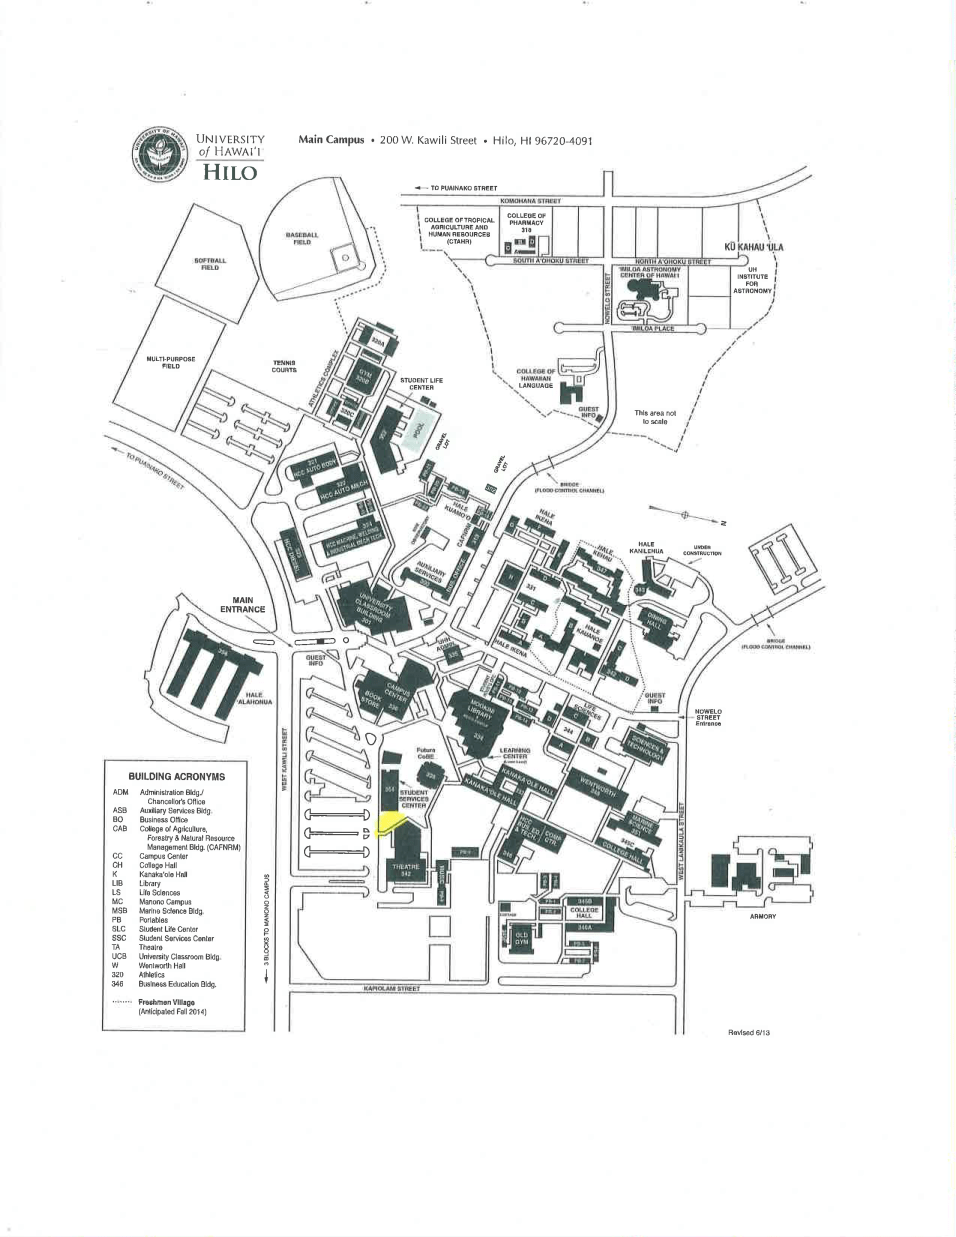 University-of-hawaii-at-hilo-Free-speech-zone-map